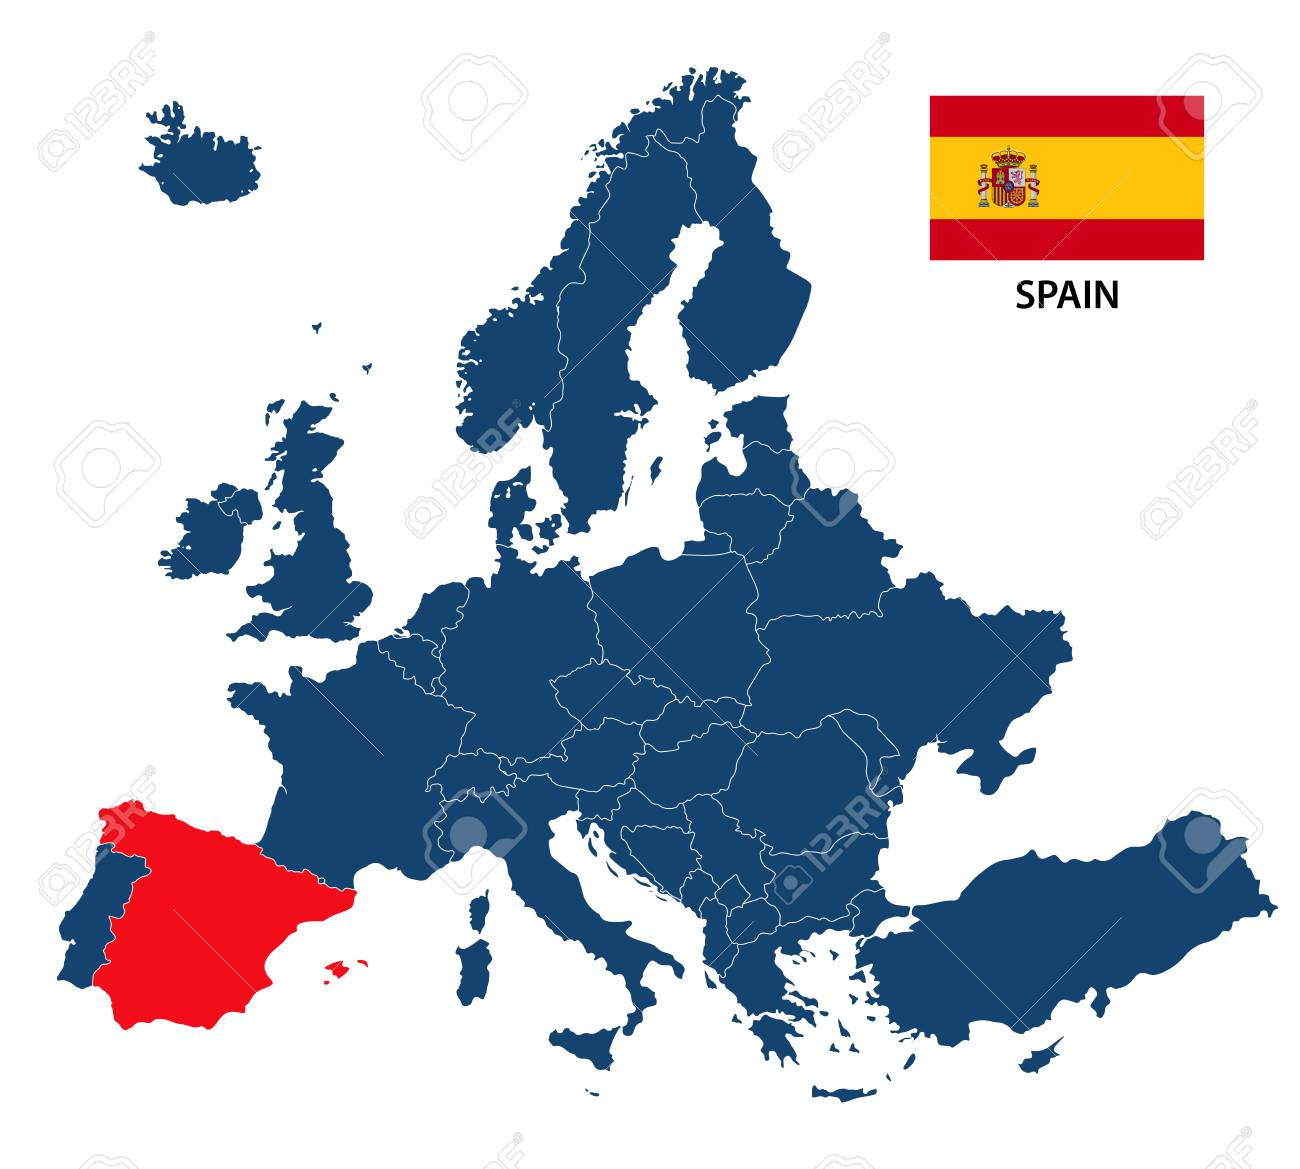 map of europe showing spain A Vector Illustration Of A Map Of Europe With Highlighted Spain